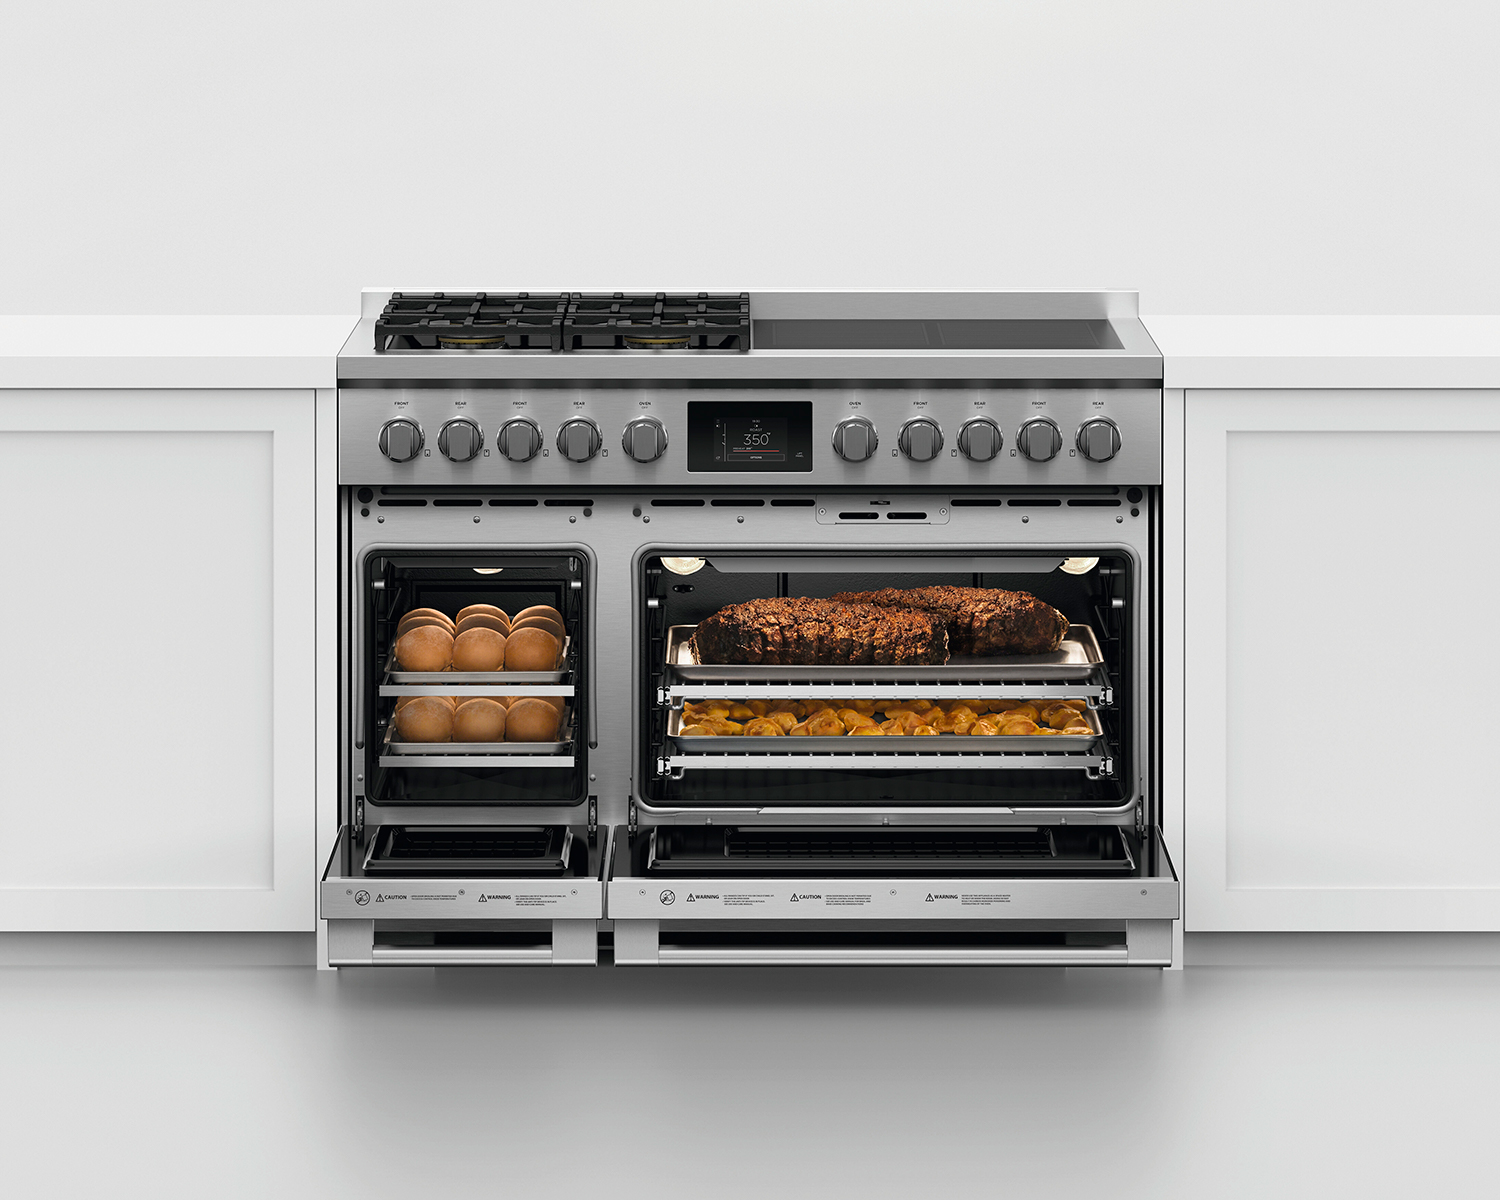 View of the range with the oven doors open